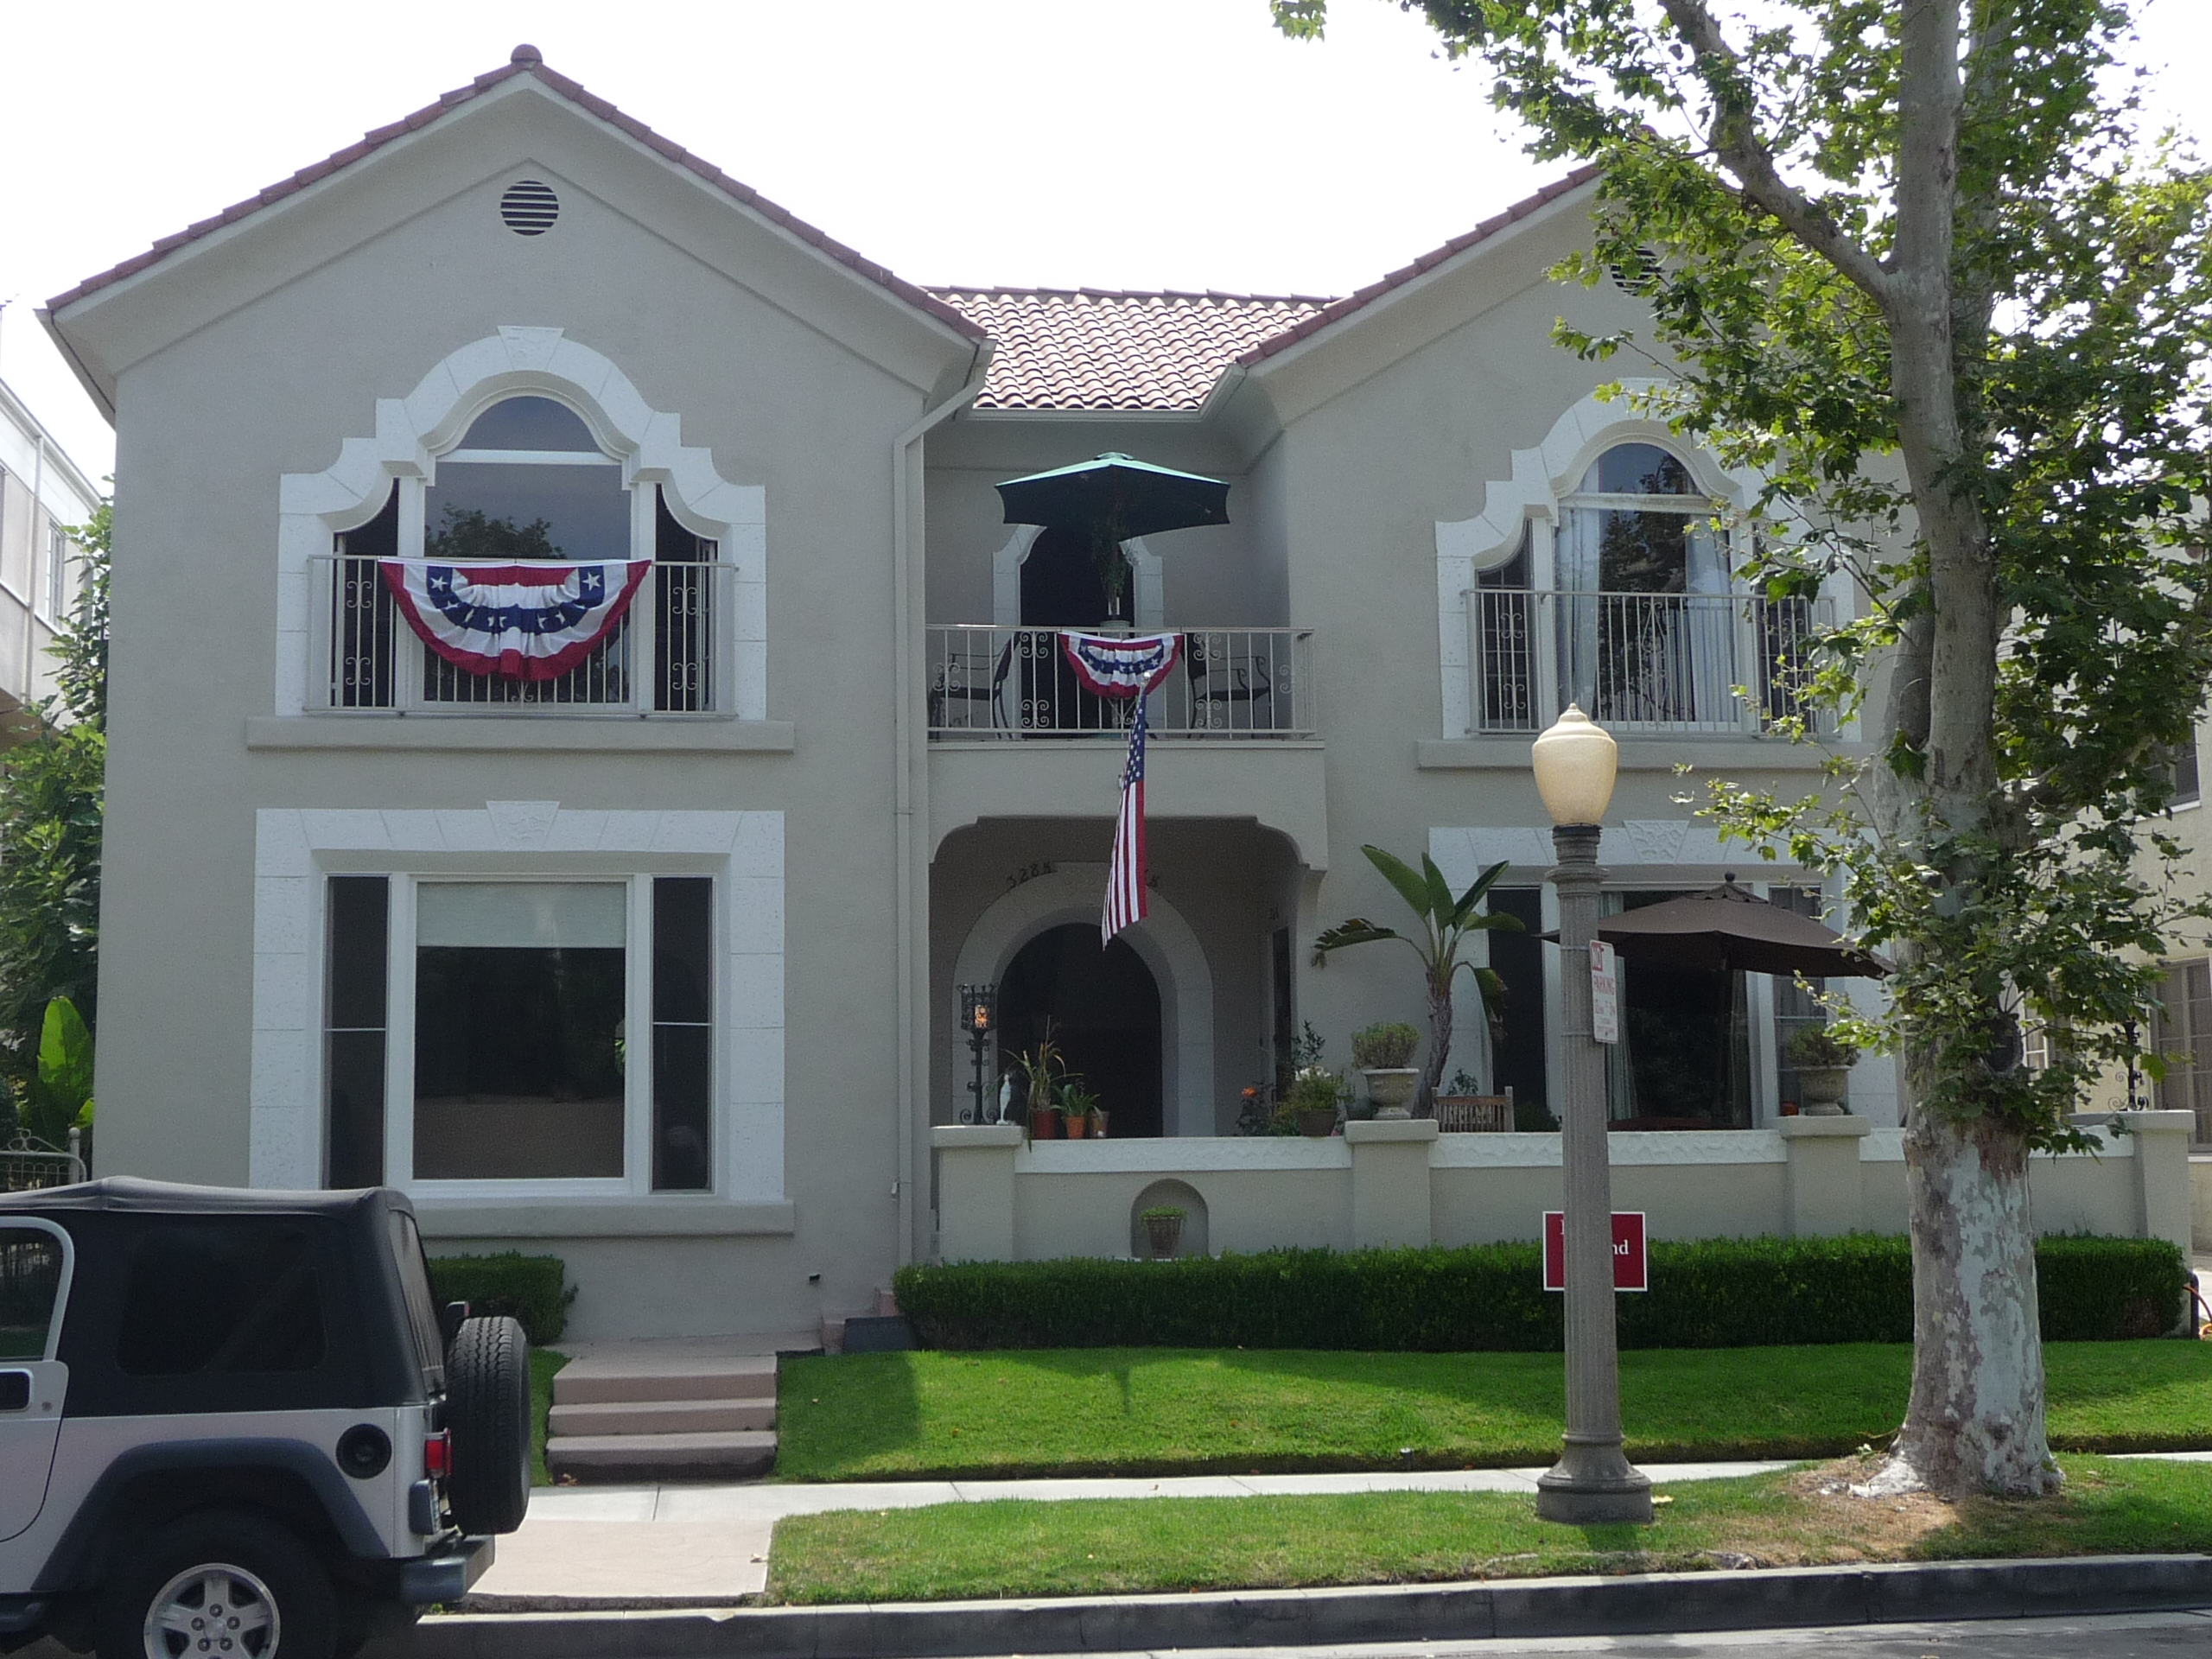 328 N SYCAMORE AVE - PHOTO